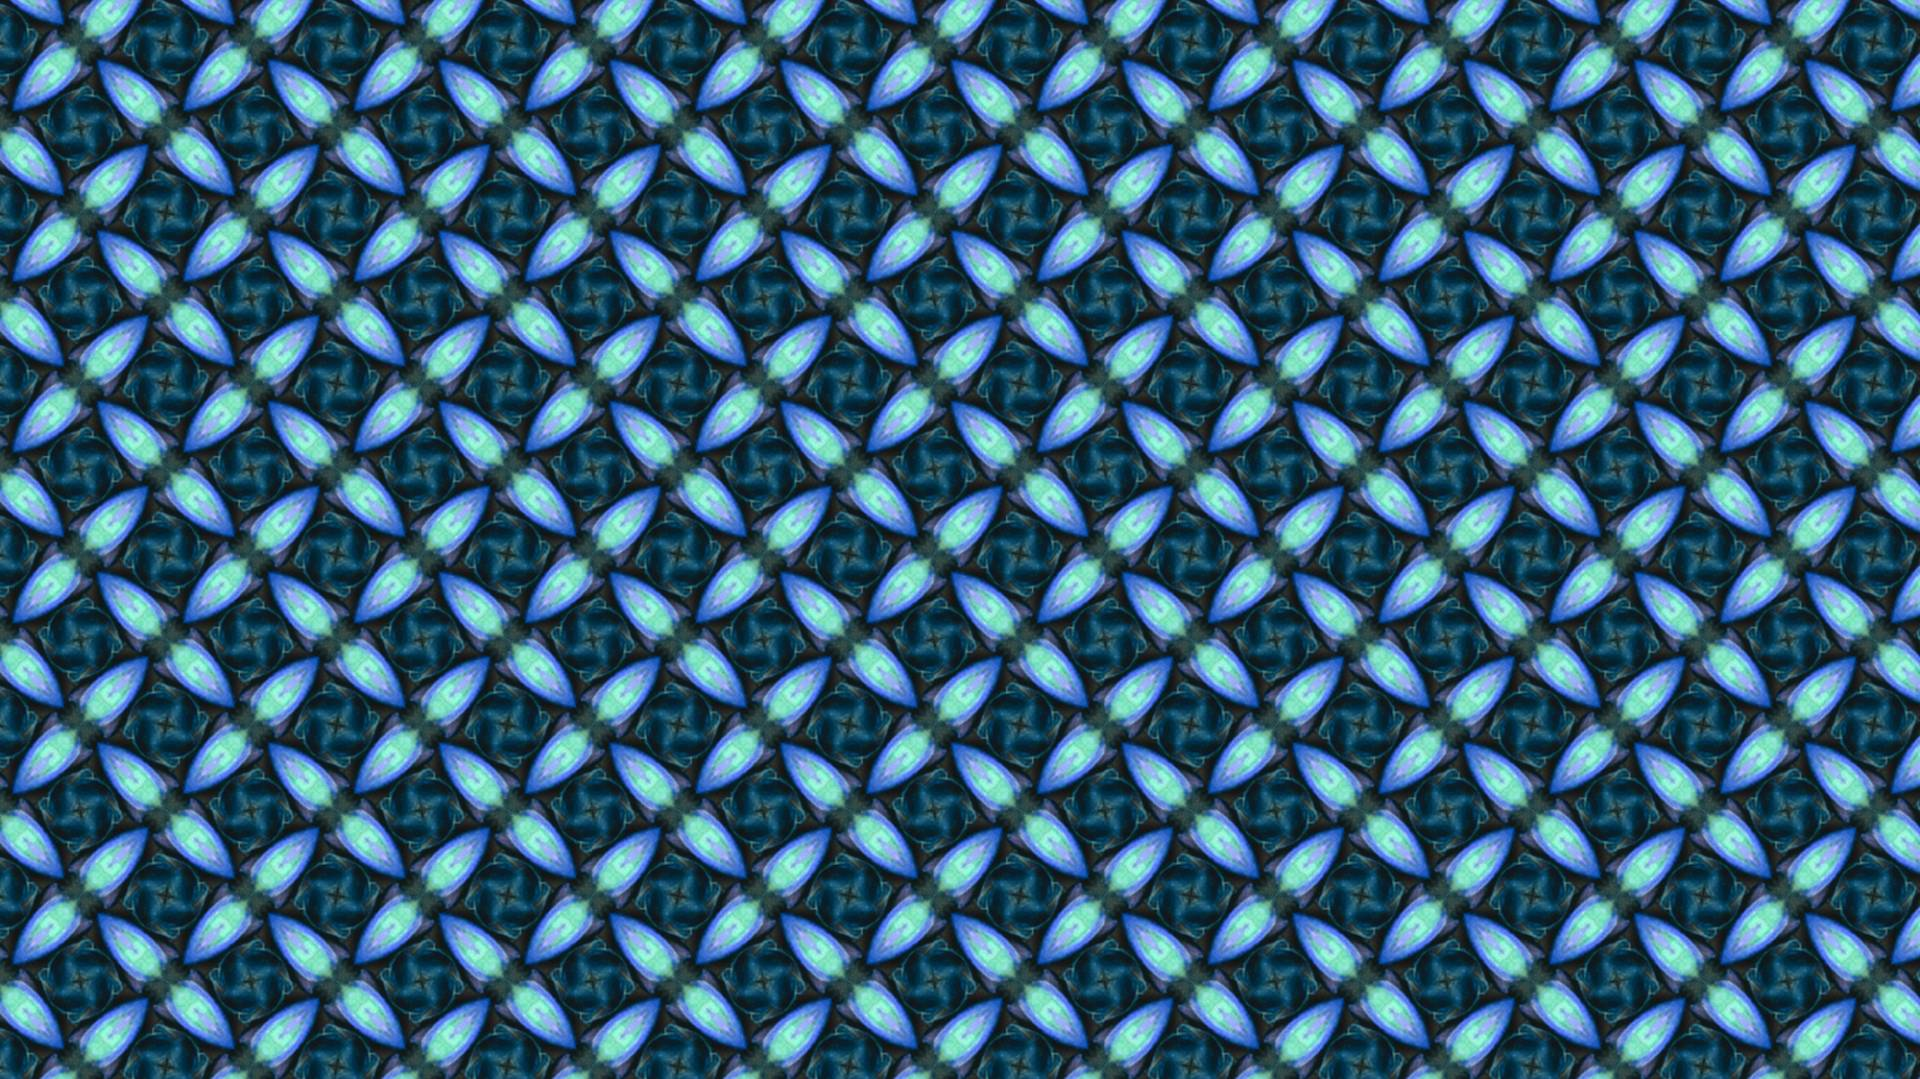 An insulating material using the symmetry principles behind wallpaper patterns